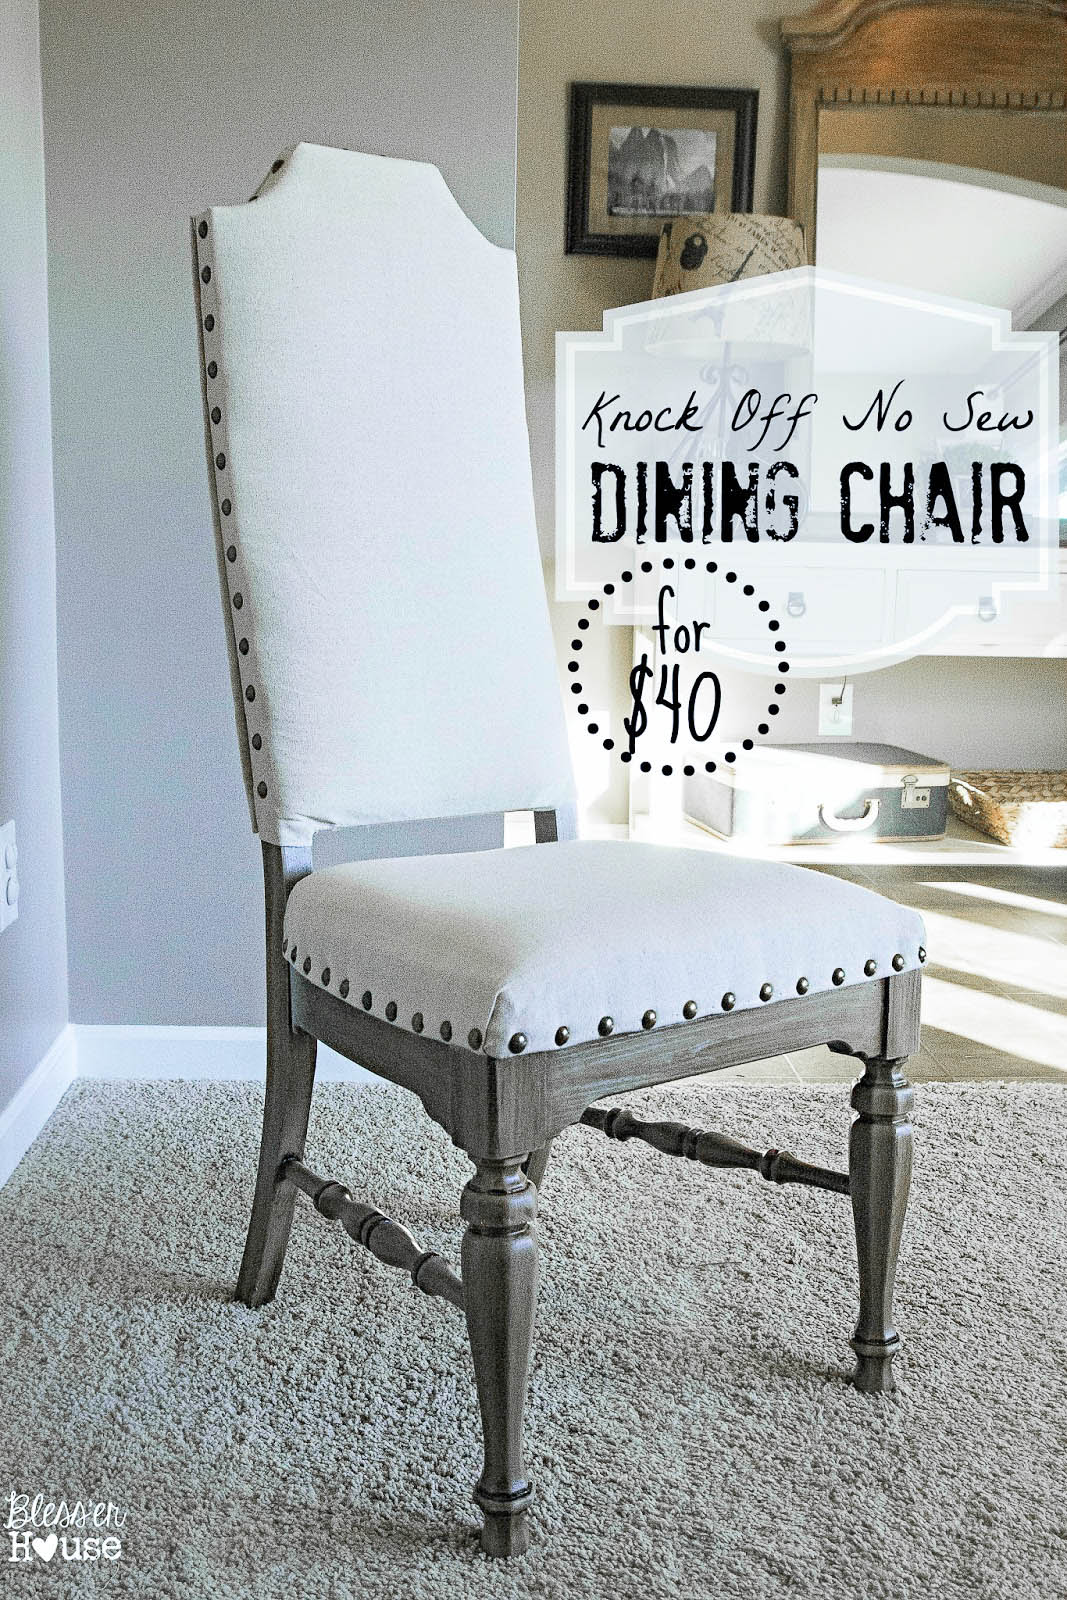 Diy reupholster dining chair - Knock Off No Sew Dining Chairs